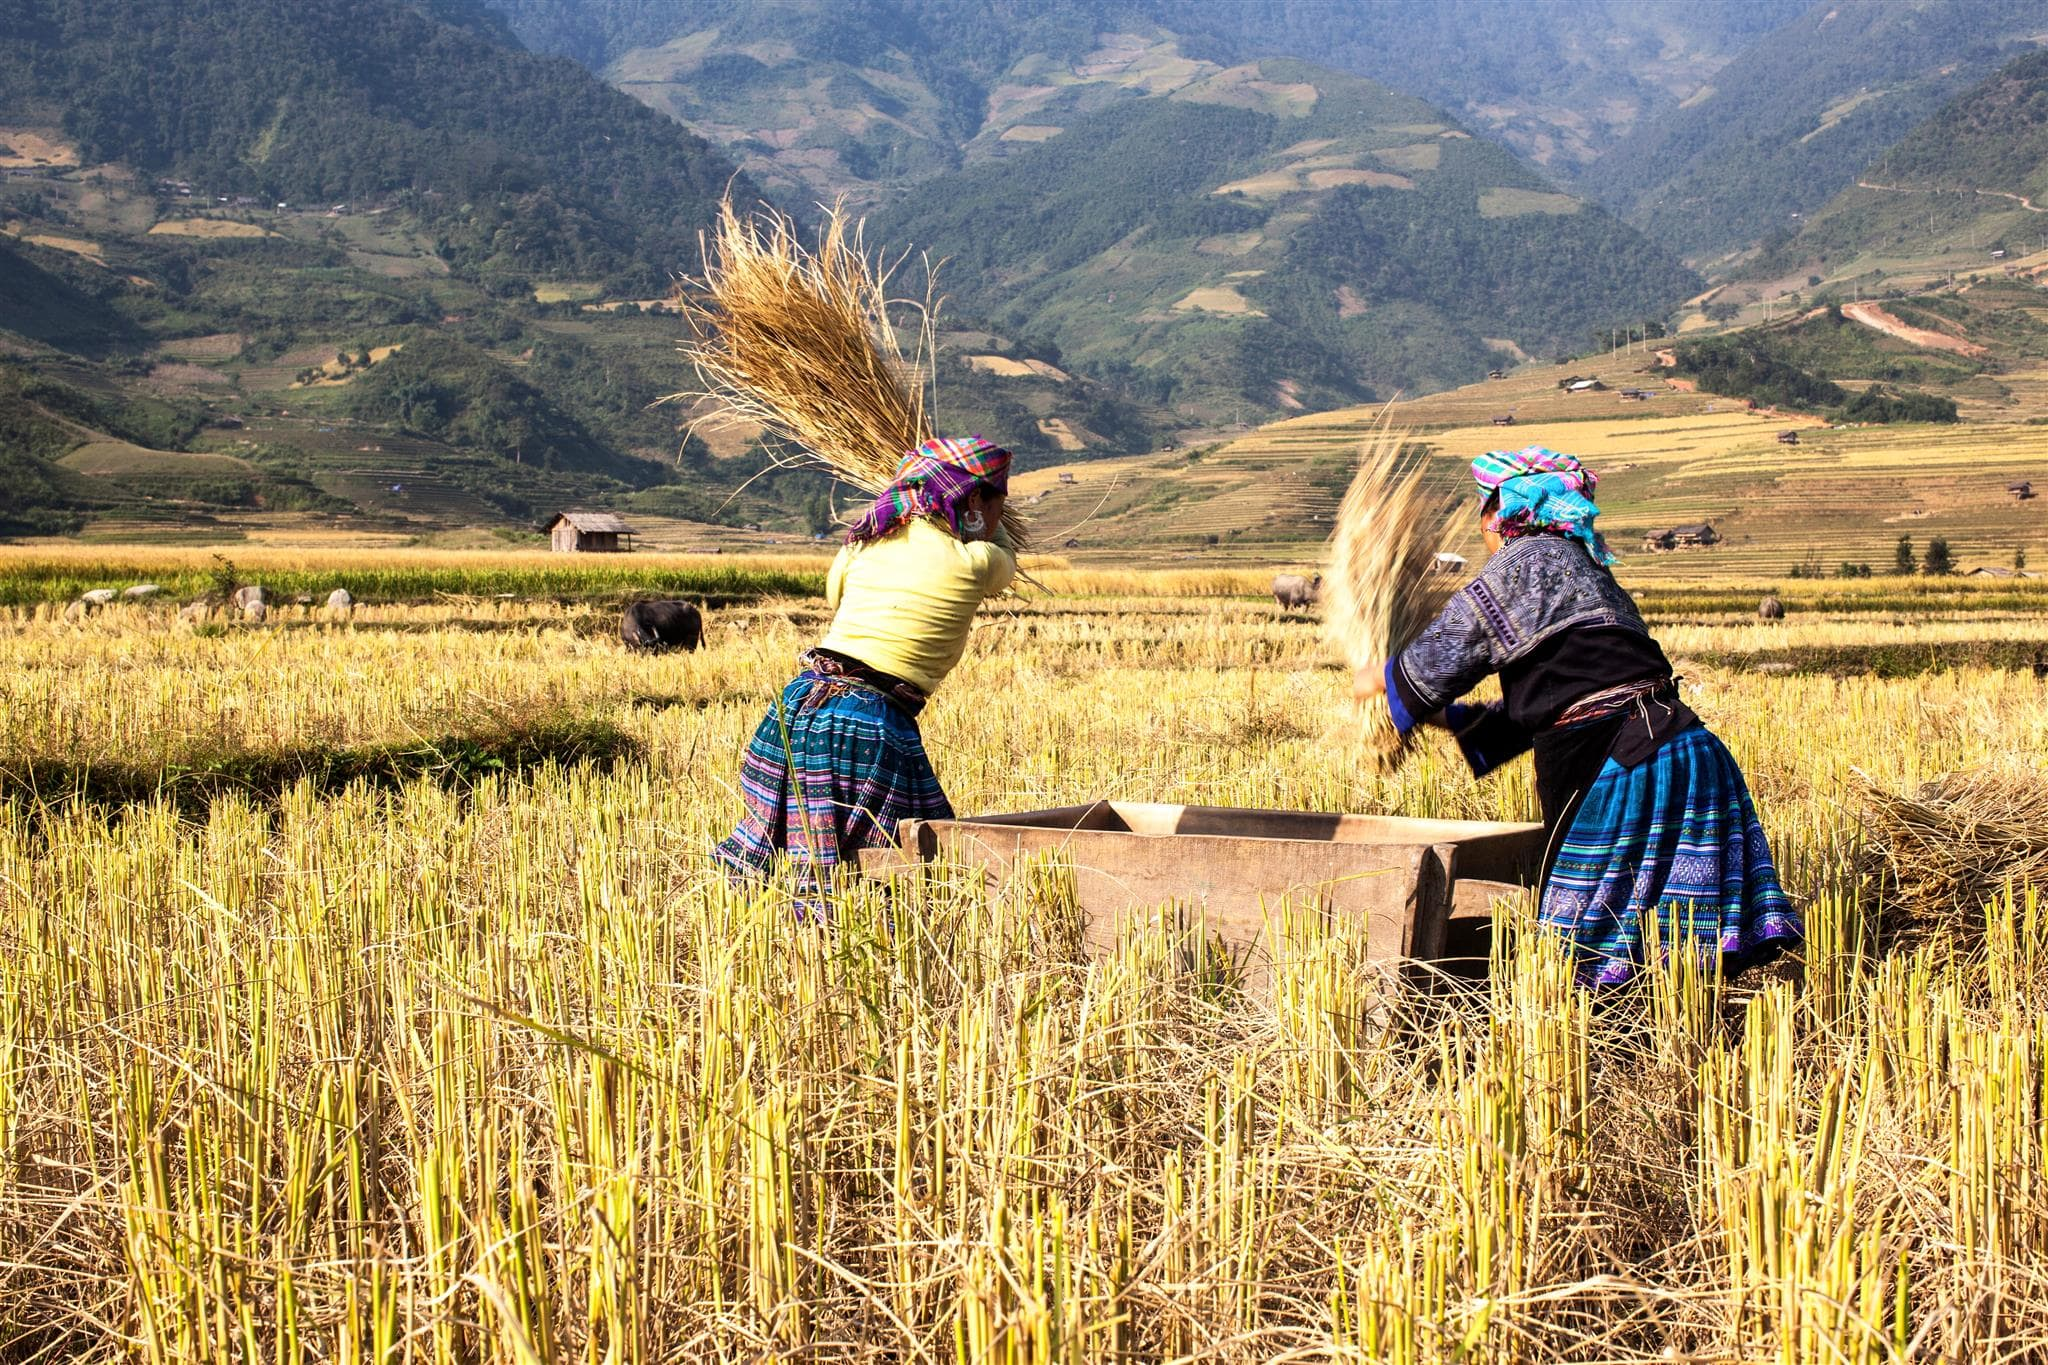 After 8 hour driving from Hanoi by bus, you get the chance to admire the impressive Mu Cang Chai rice terraces and explore the local ethnic cultures of Tay and H'mong people.